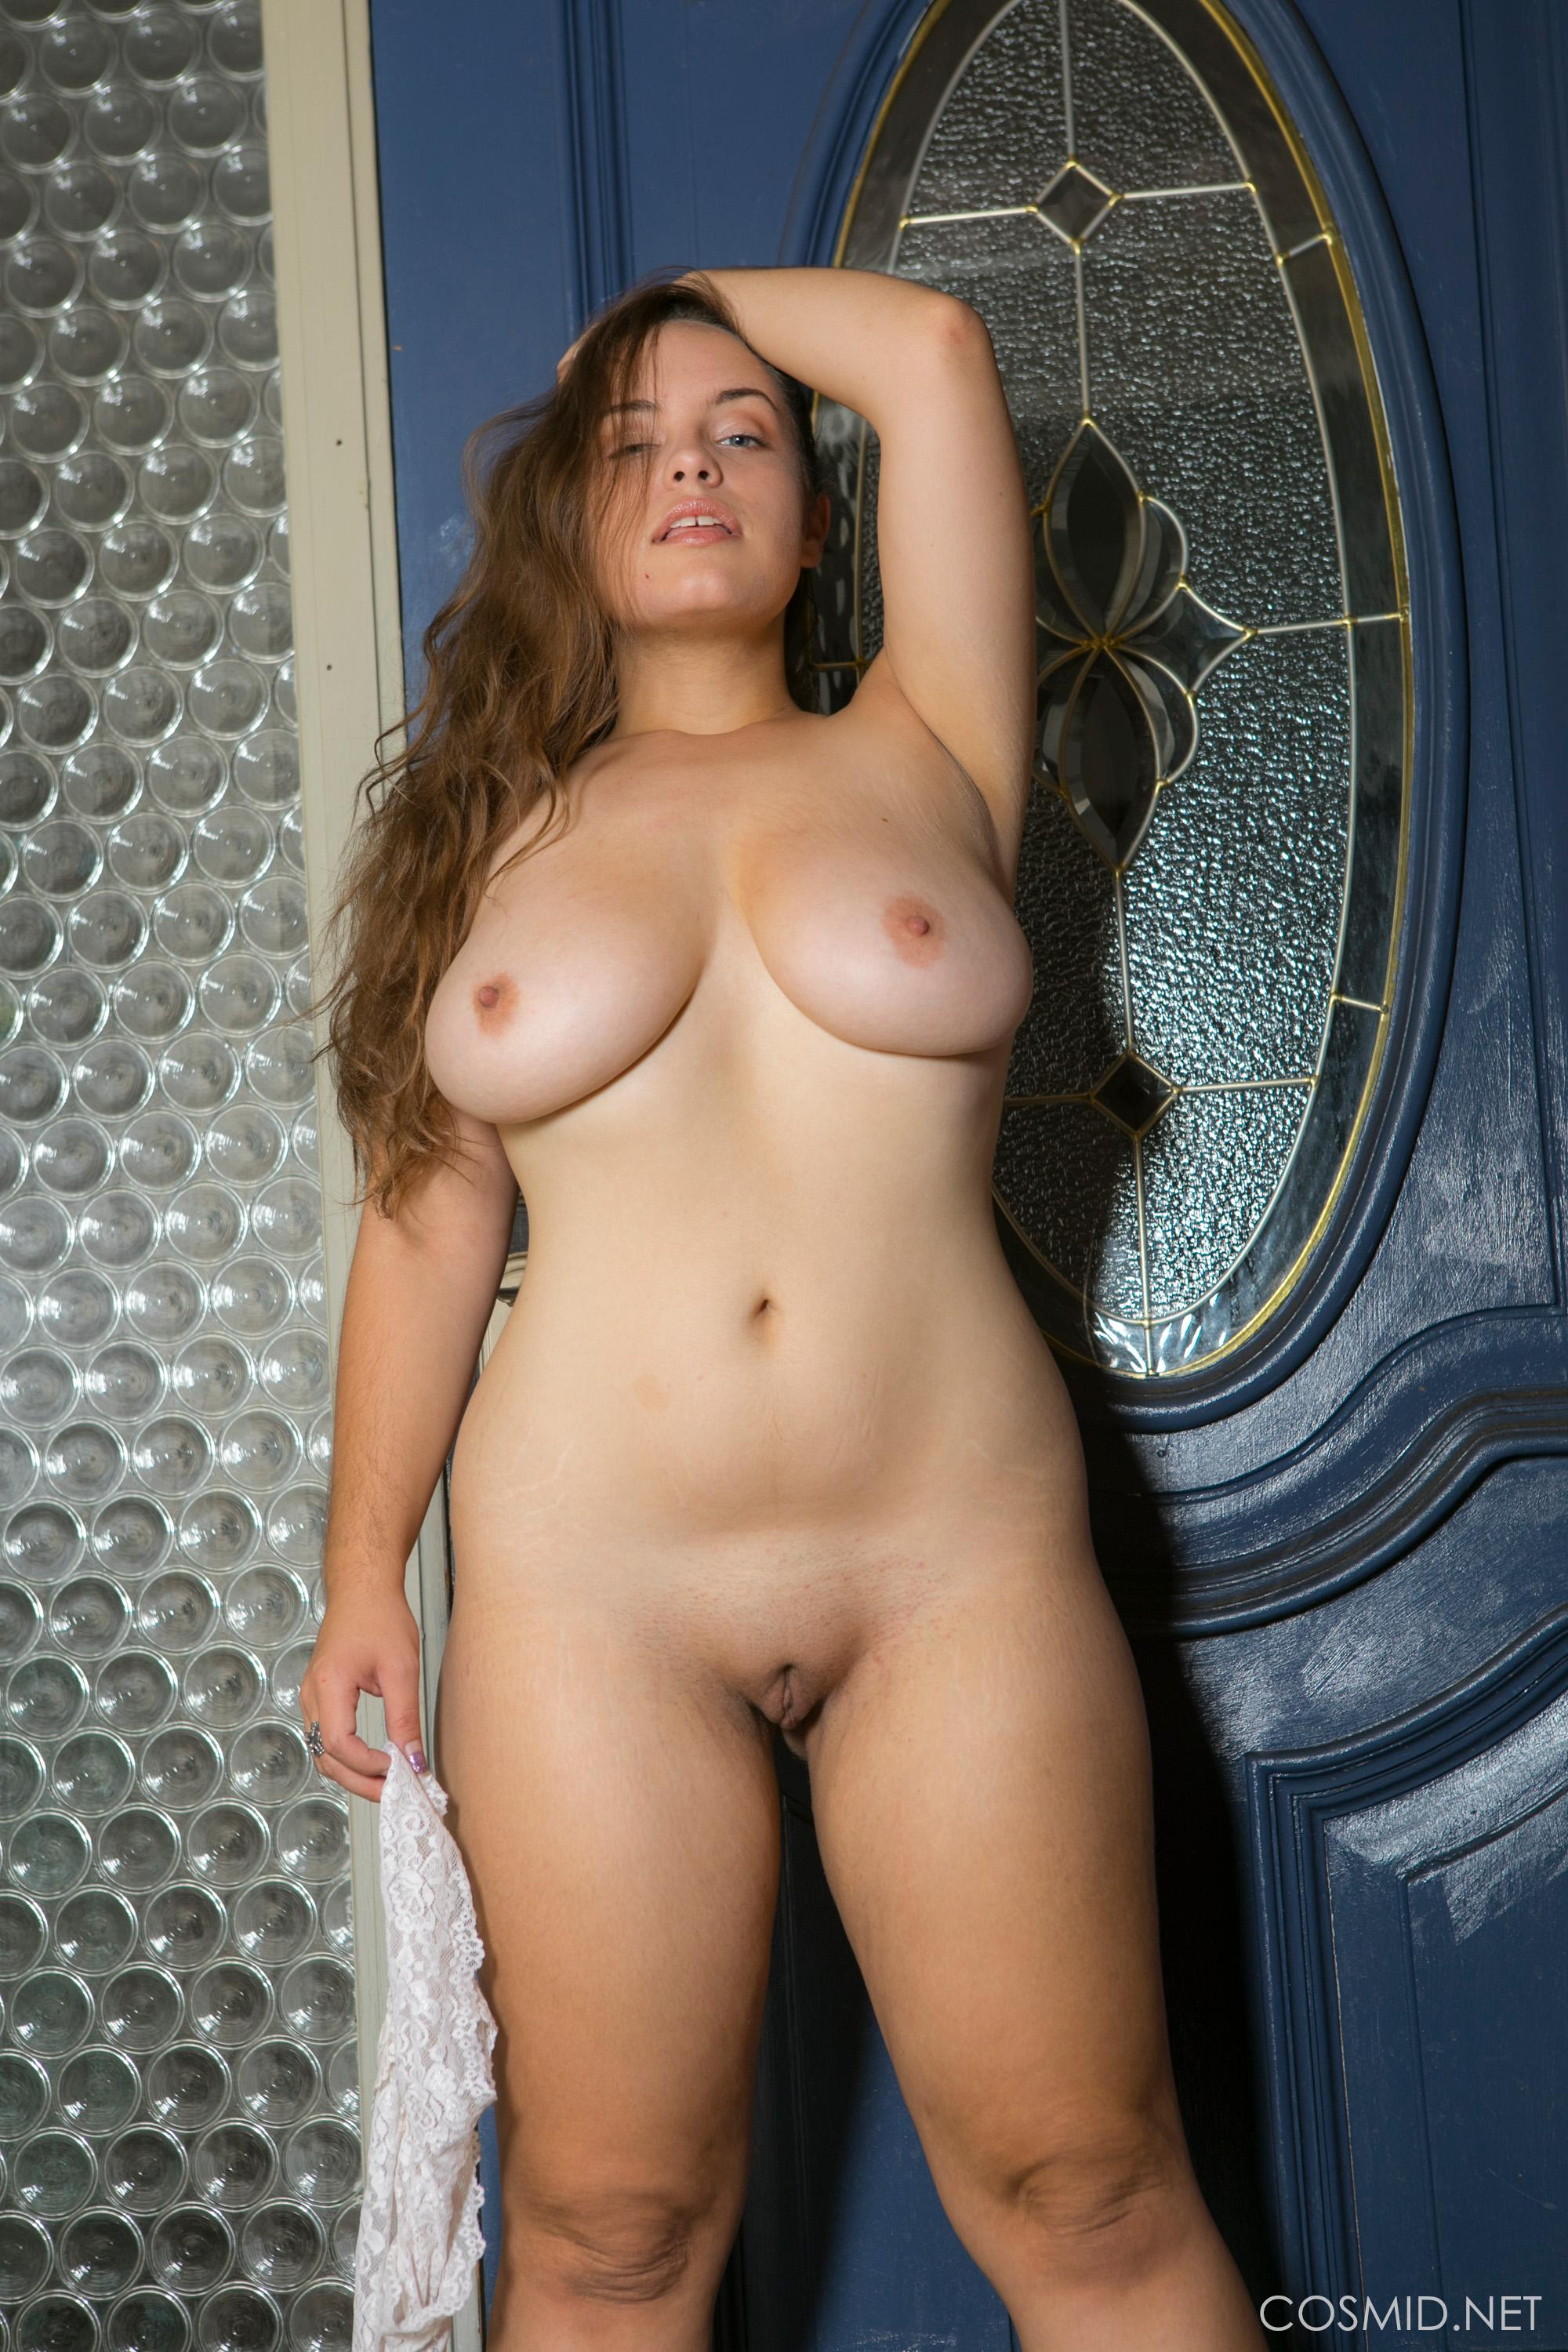 Busty girl Sophie Barnes strips for you in the doorway ...